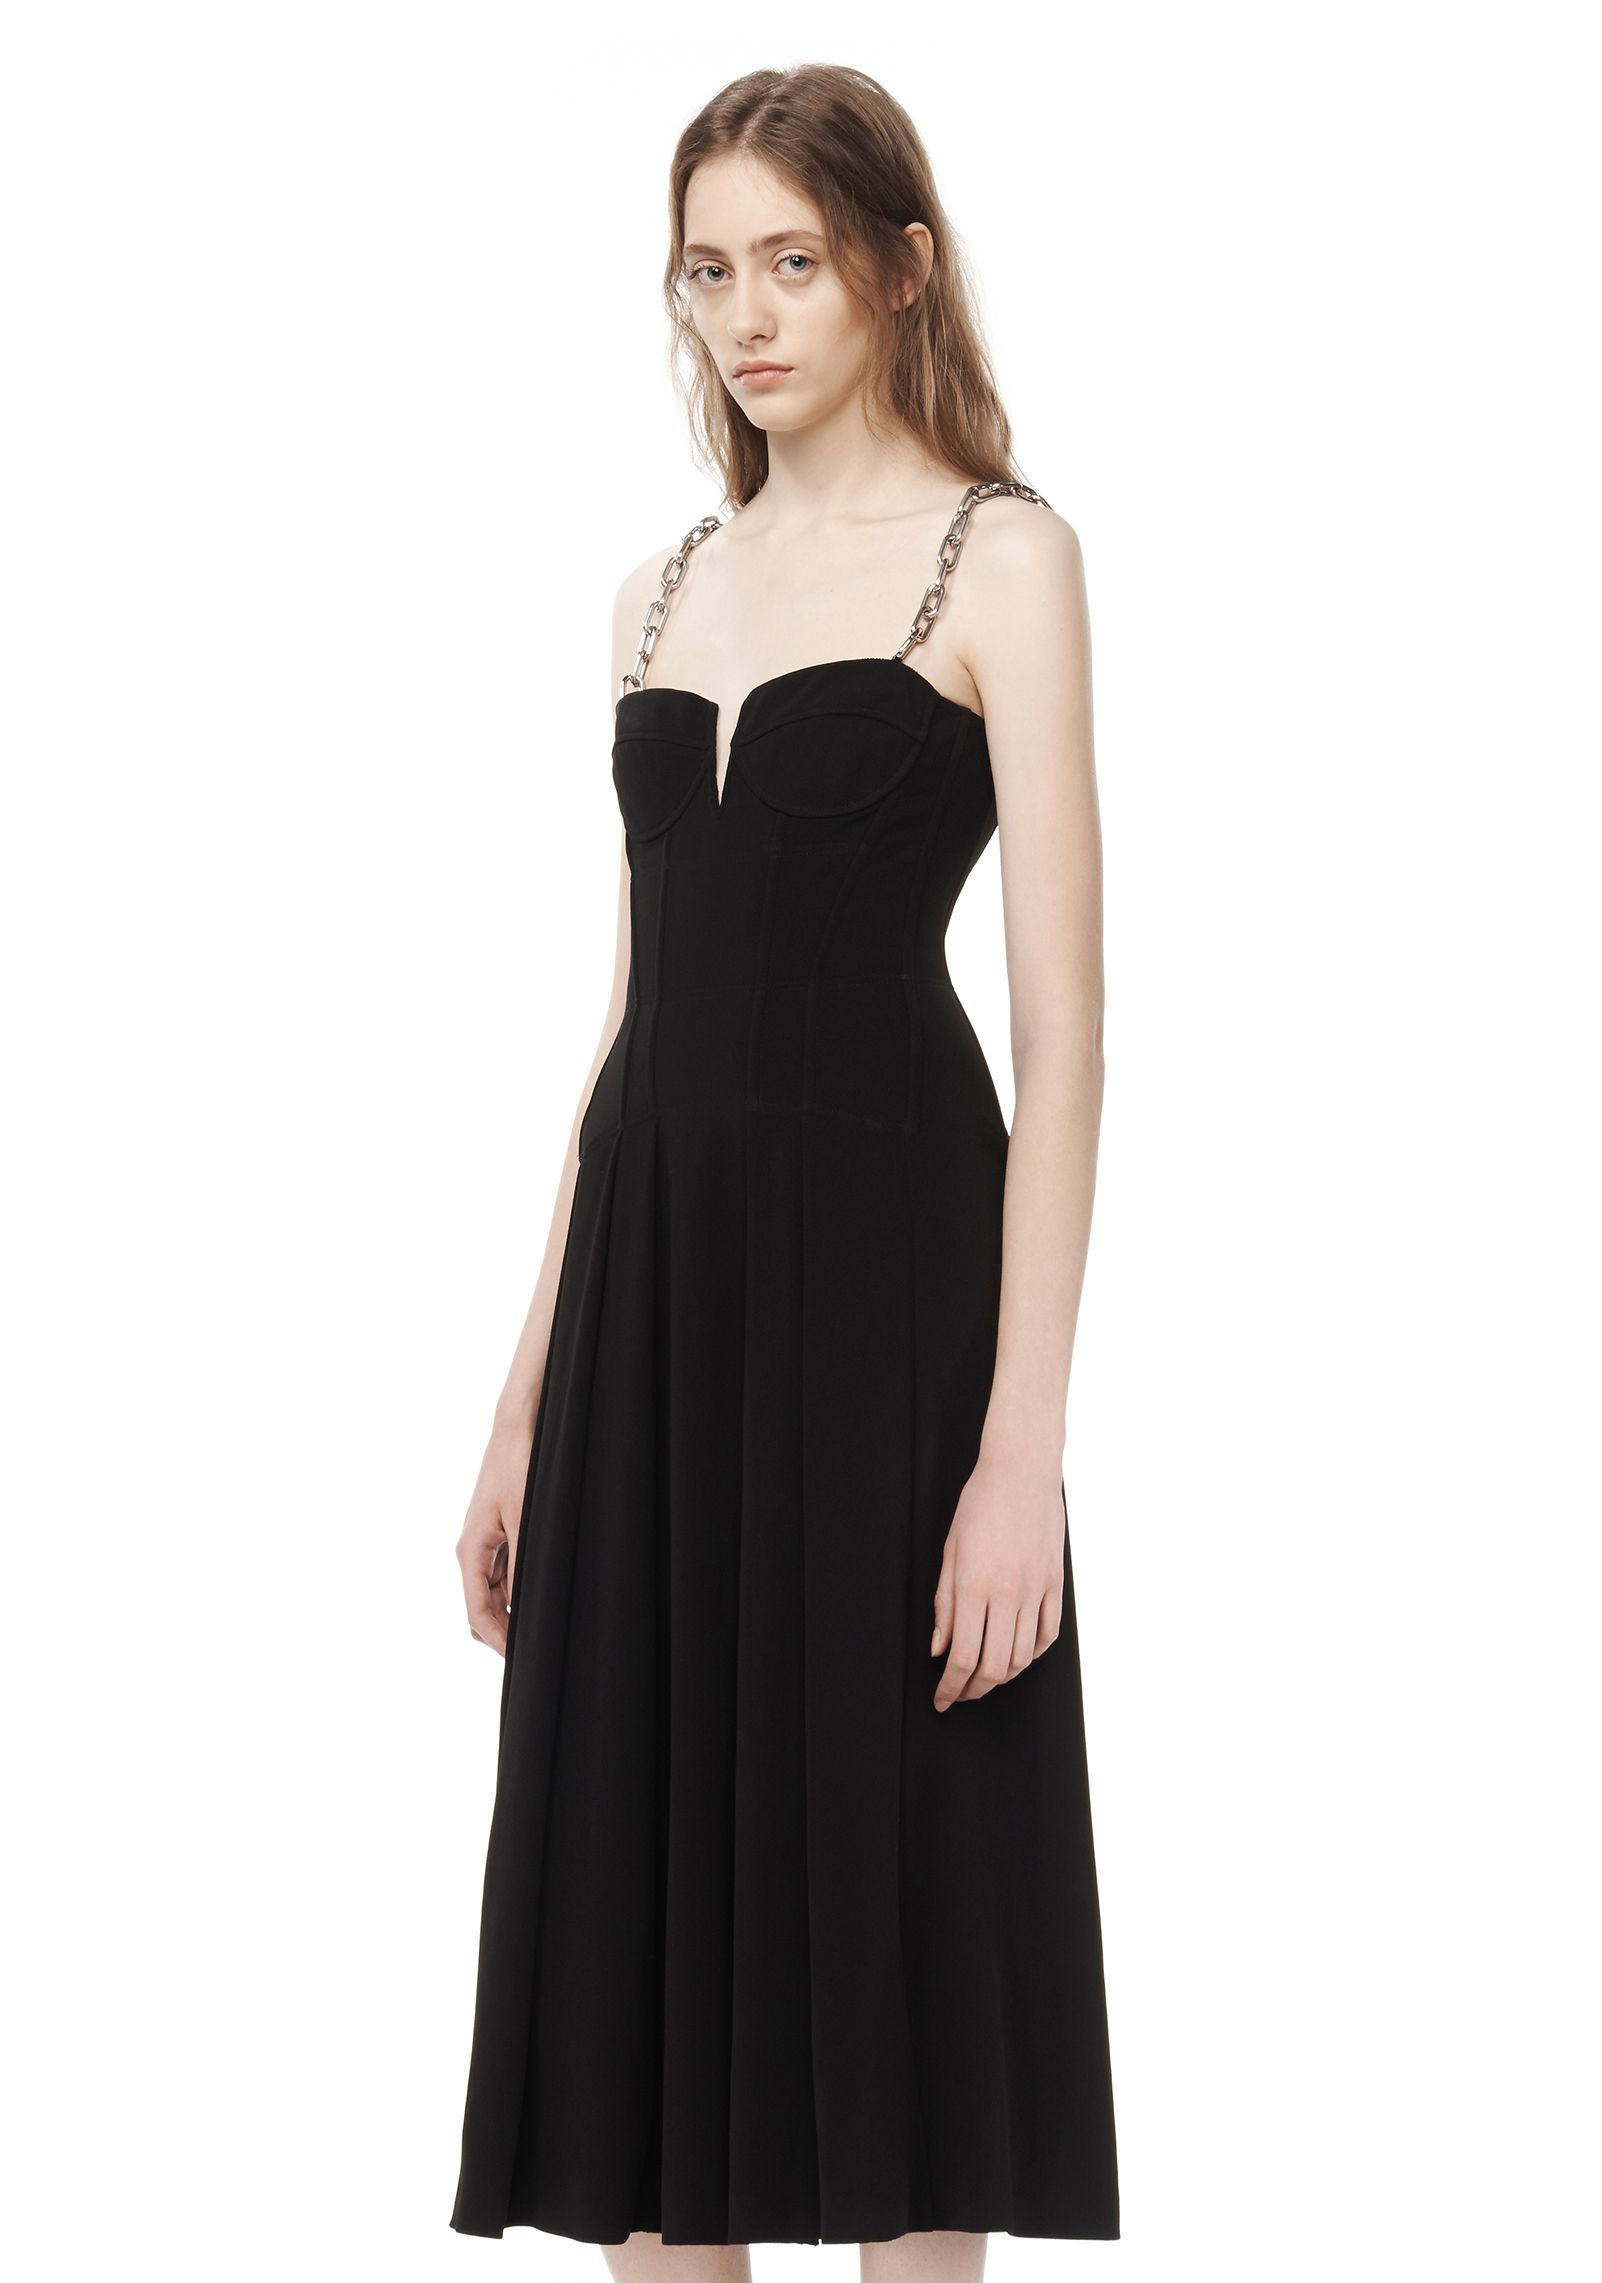 Alexander wang A-line Bustier Dress With Chain Straps in ...